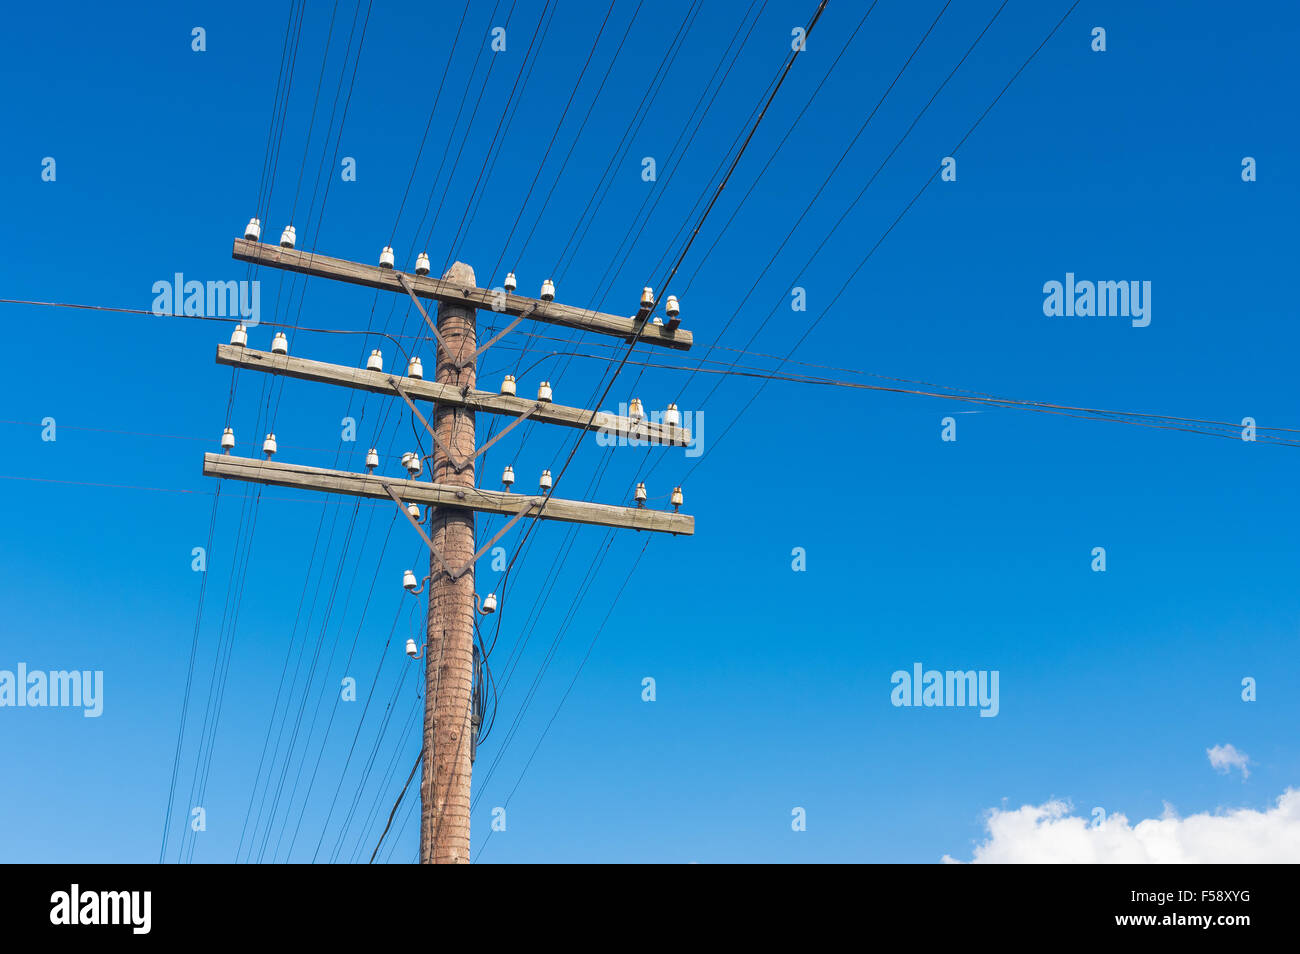 Aged Wooden Power Pole Stock Photos X Y G Wiring For An Electricity In Rural Ukrainian Area Image